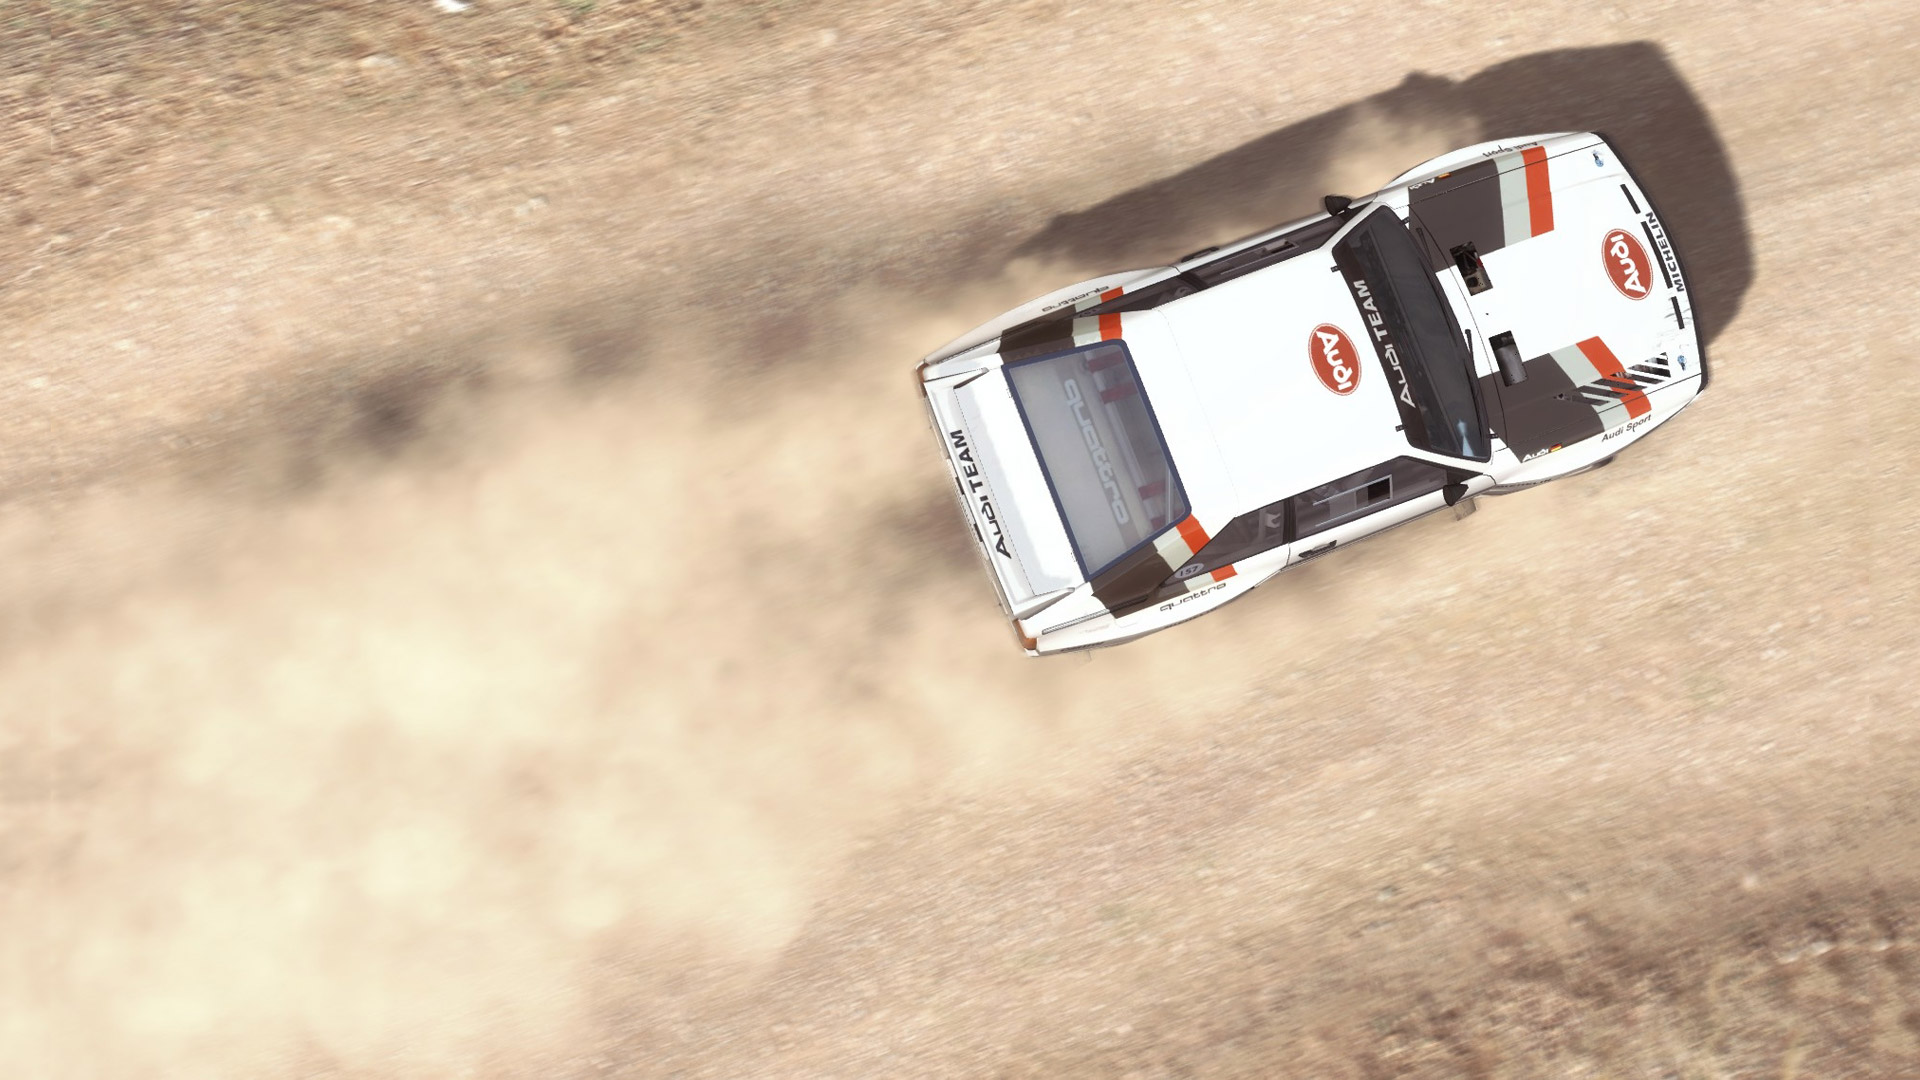 Free DiRT Rally Wallpaper in 1920x1080